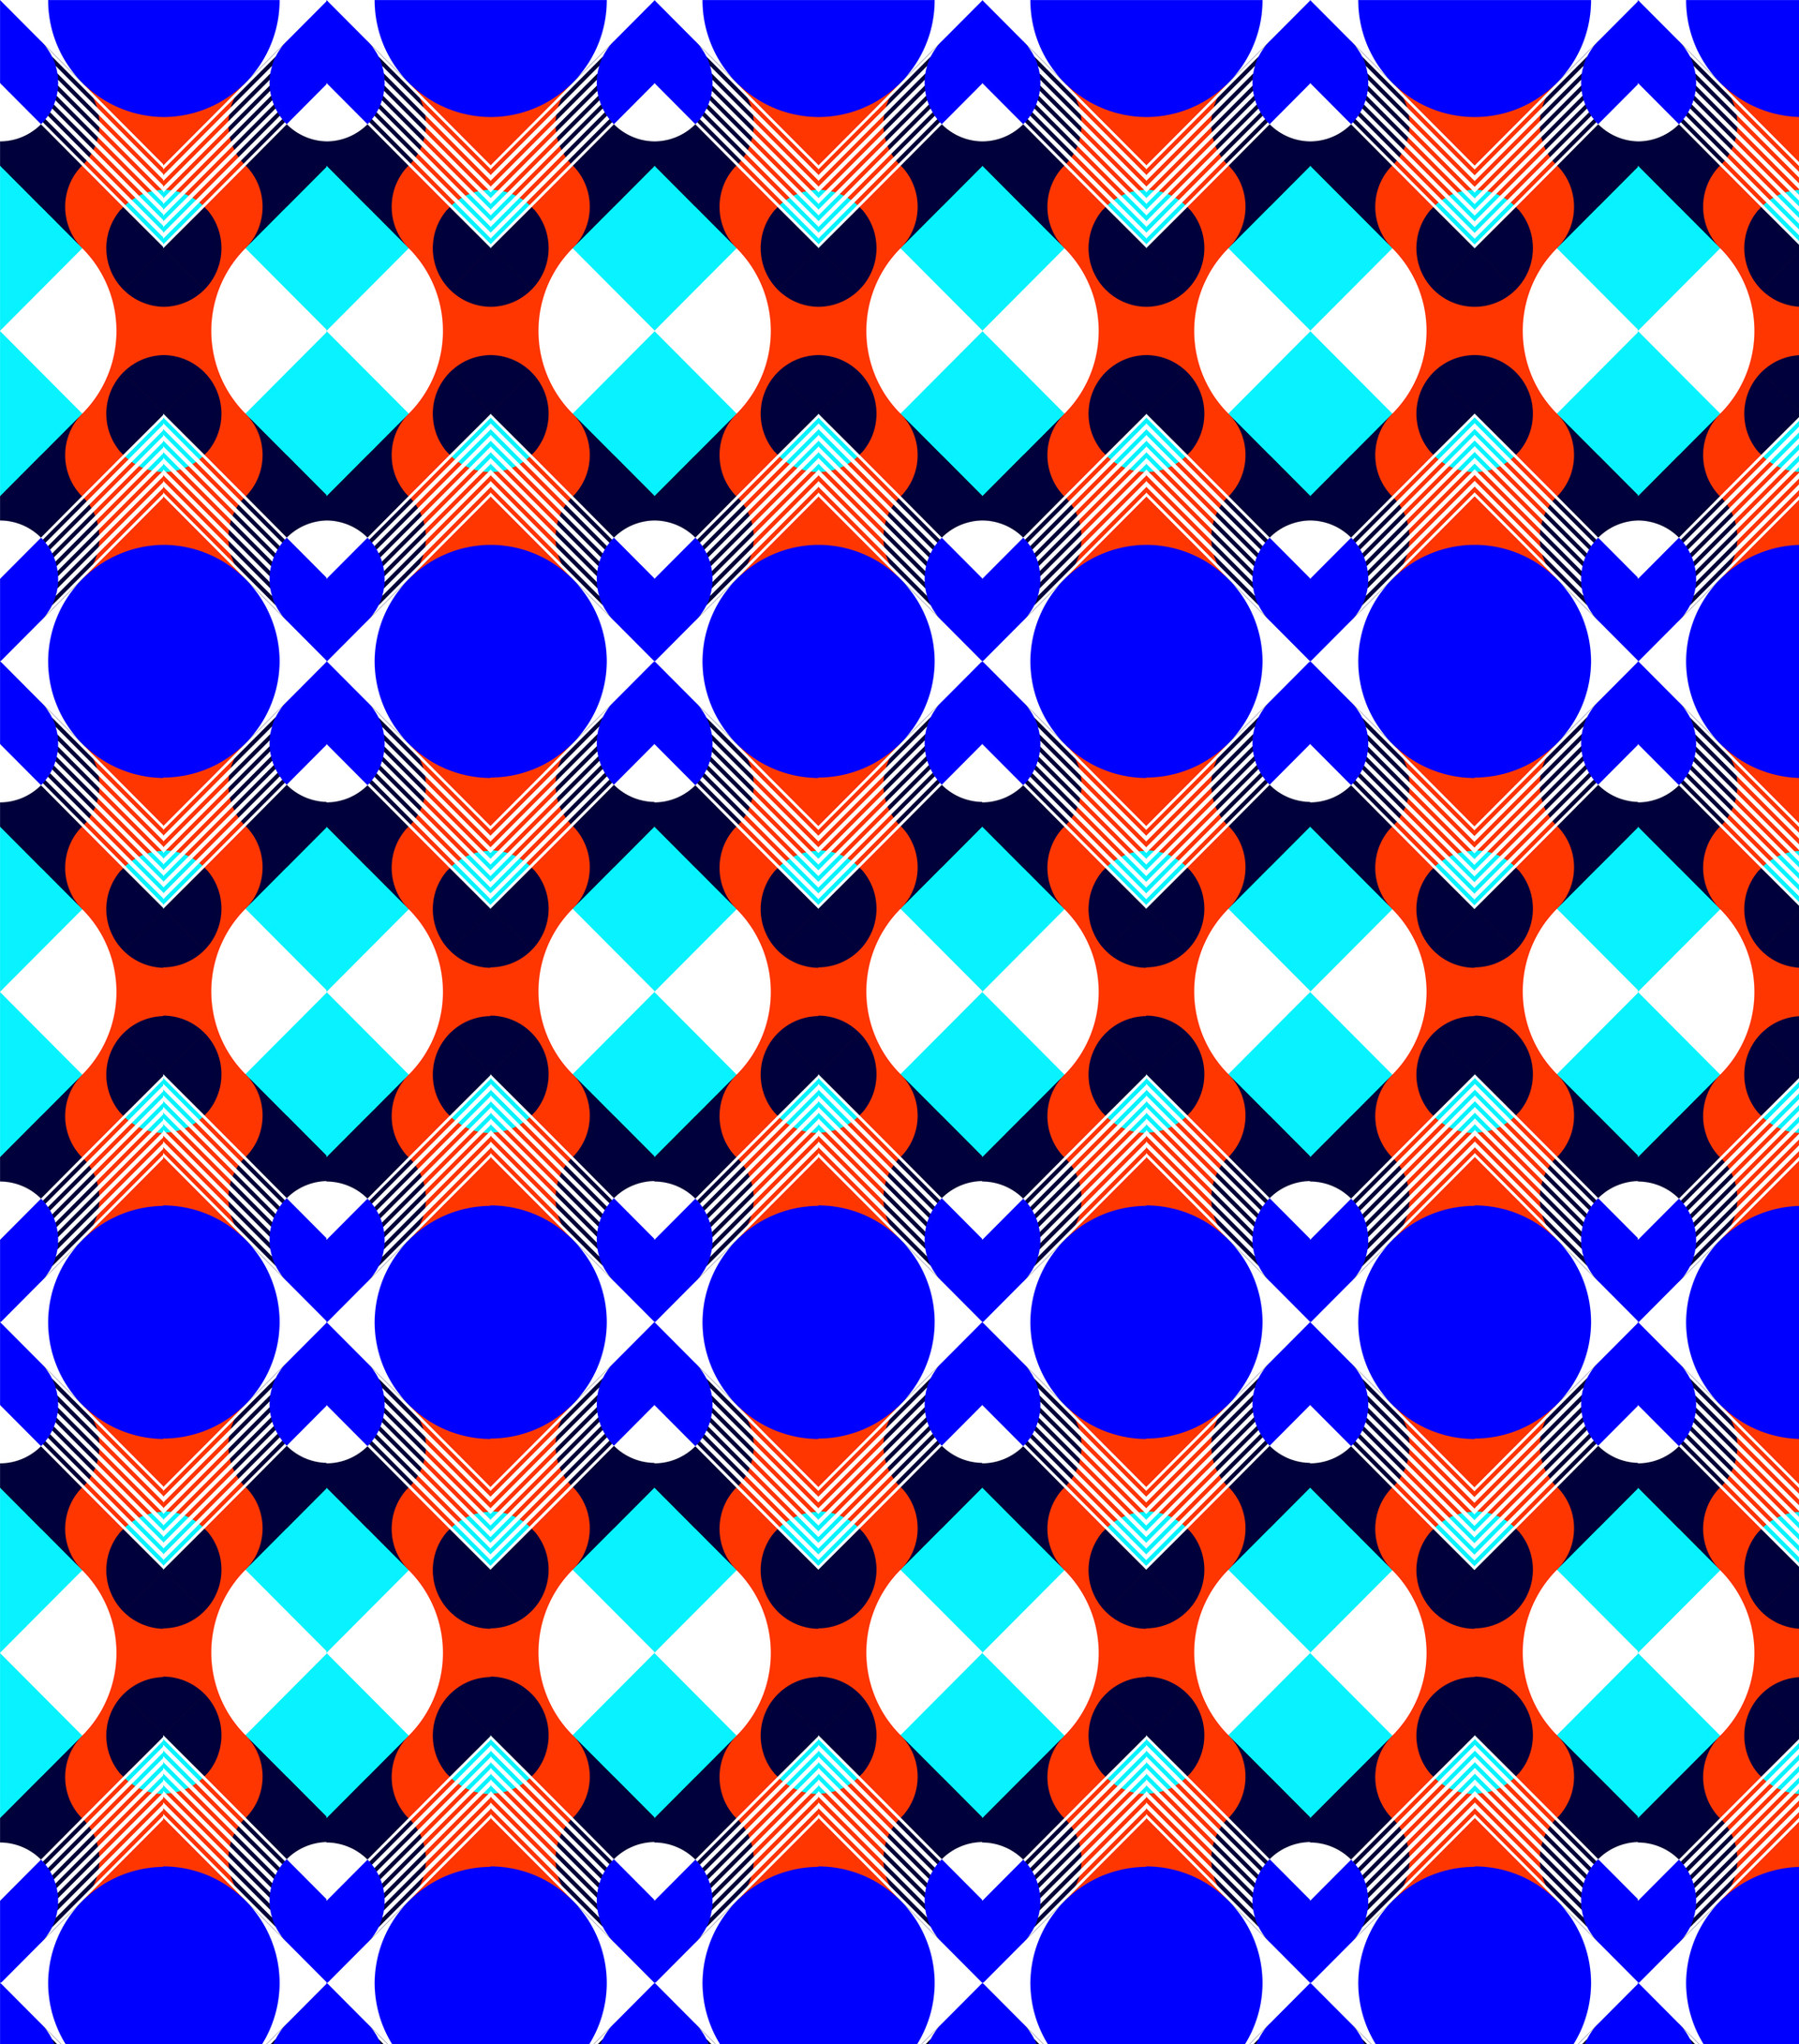 MAIN TILE REPEAT 2.jpg